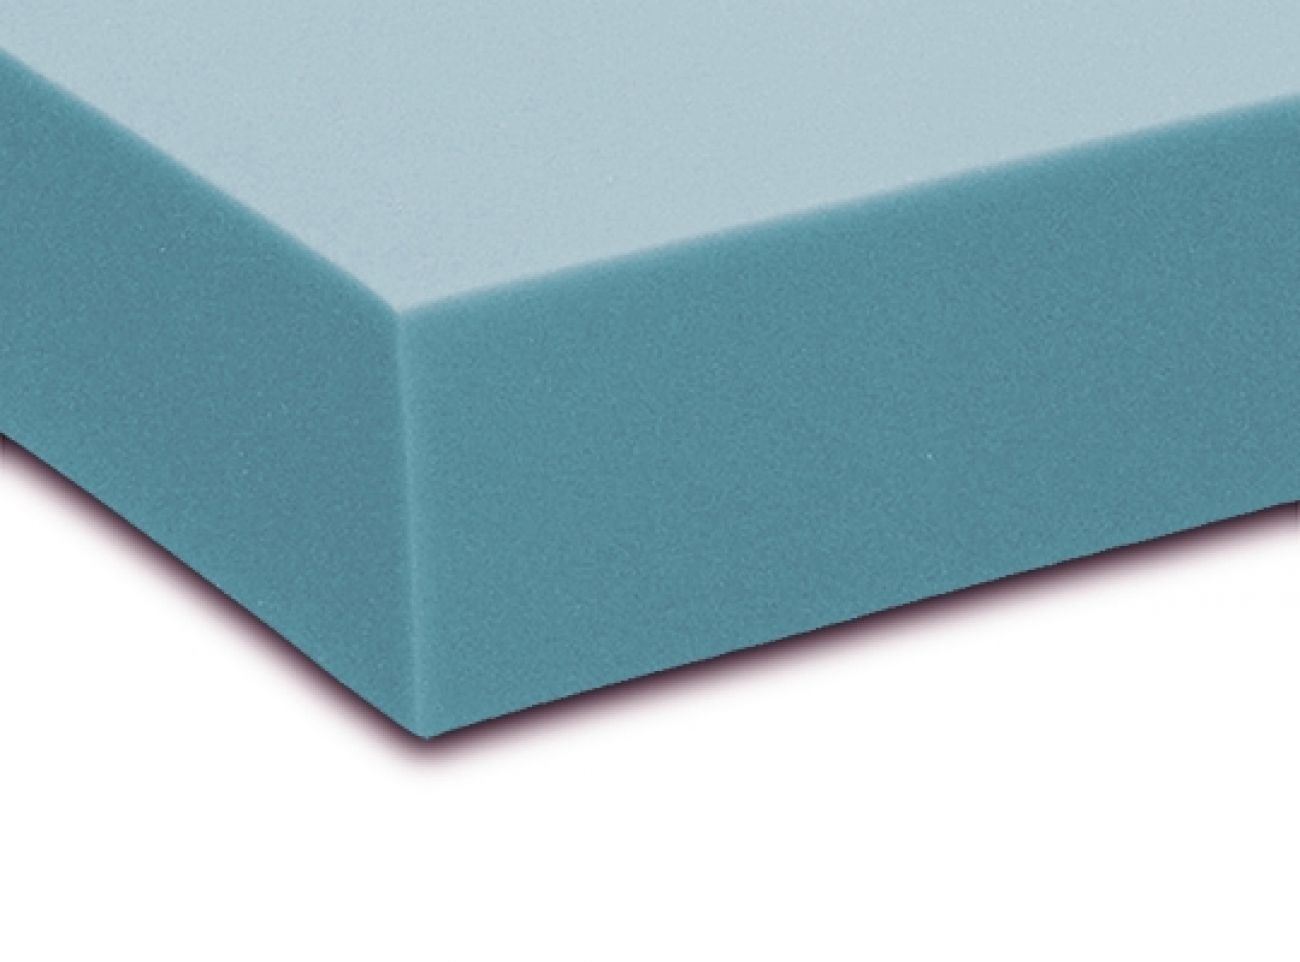 Bonne densite mousse pour canape for Mousse polyurethane canape